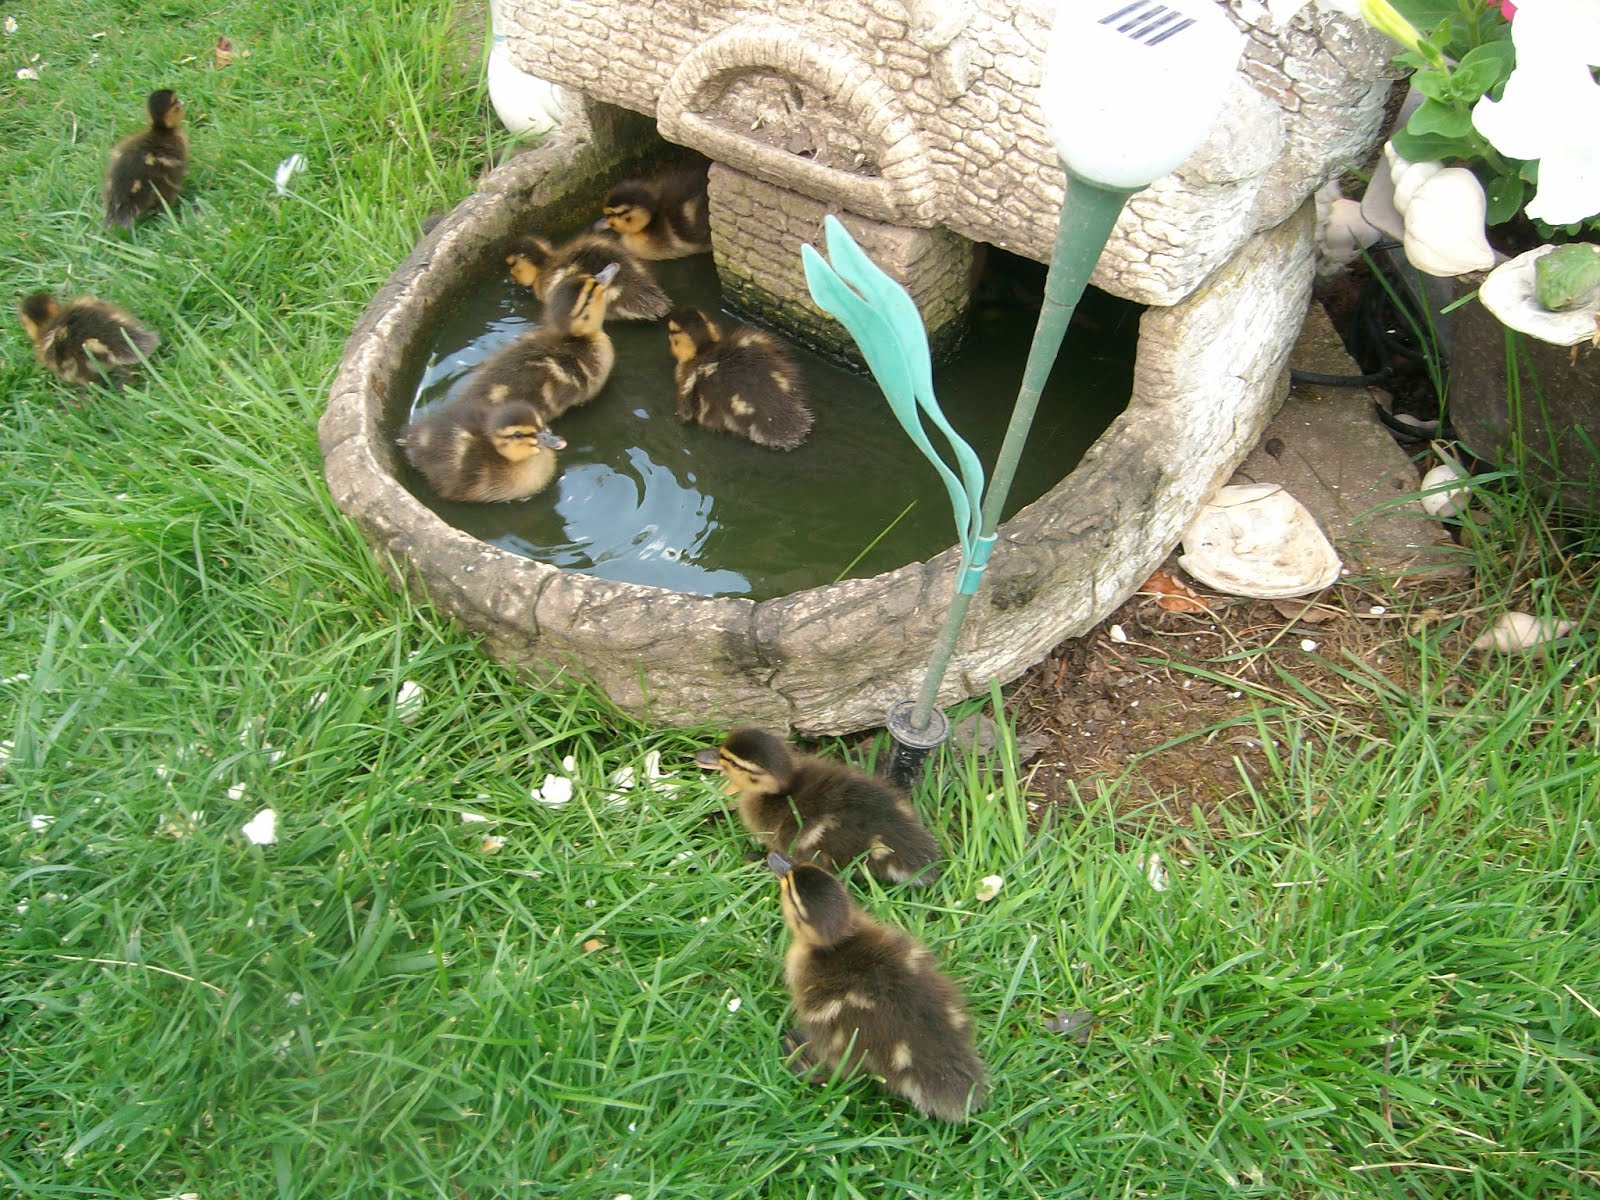 Safe place for ducklings to swim